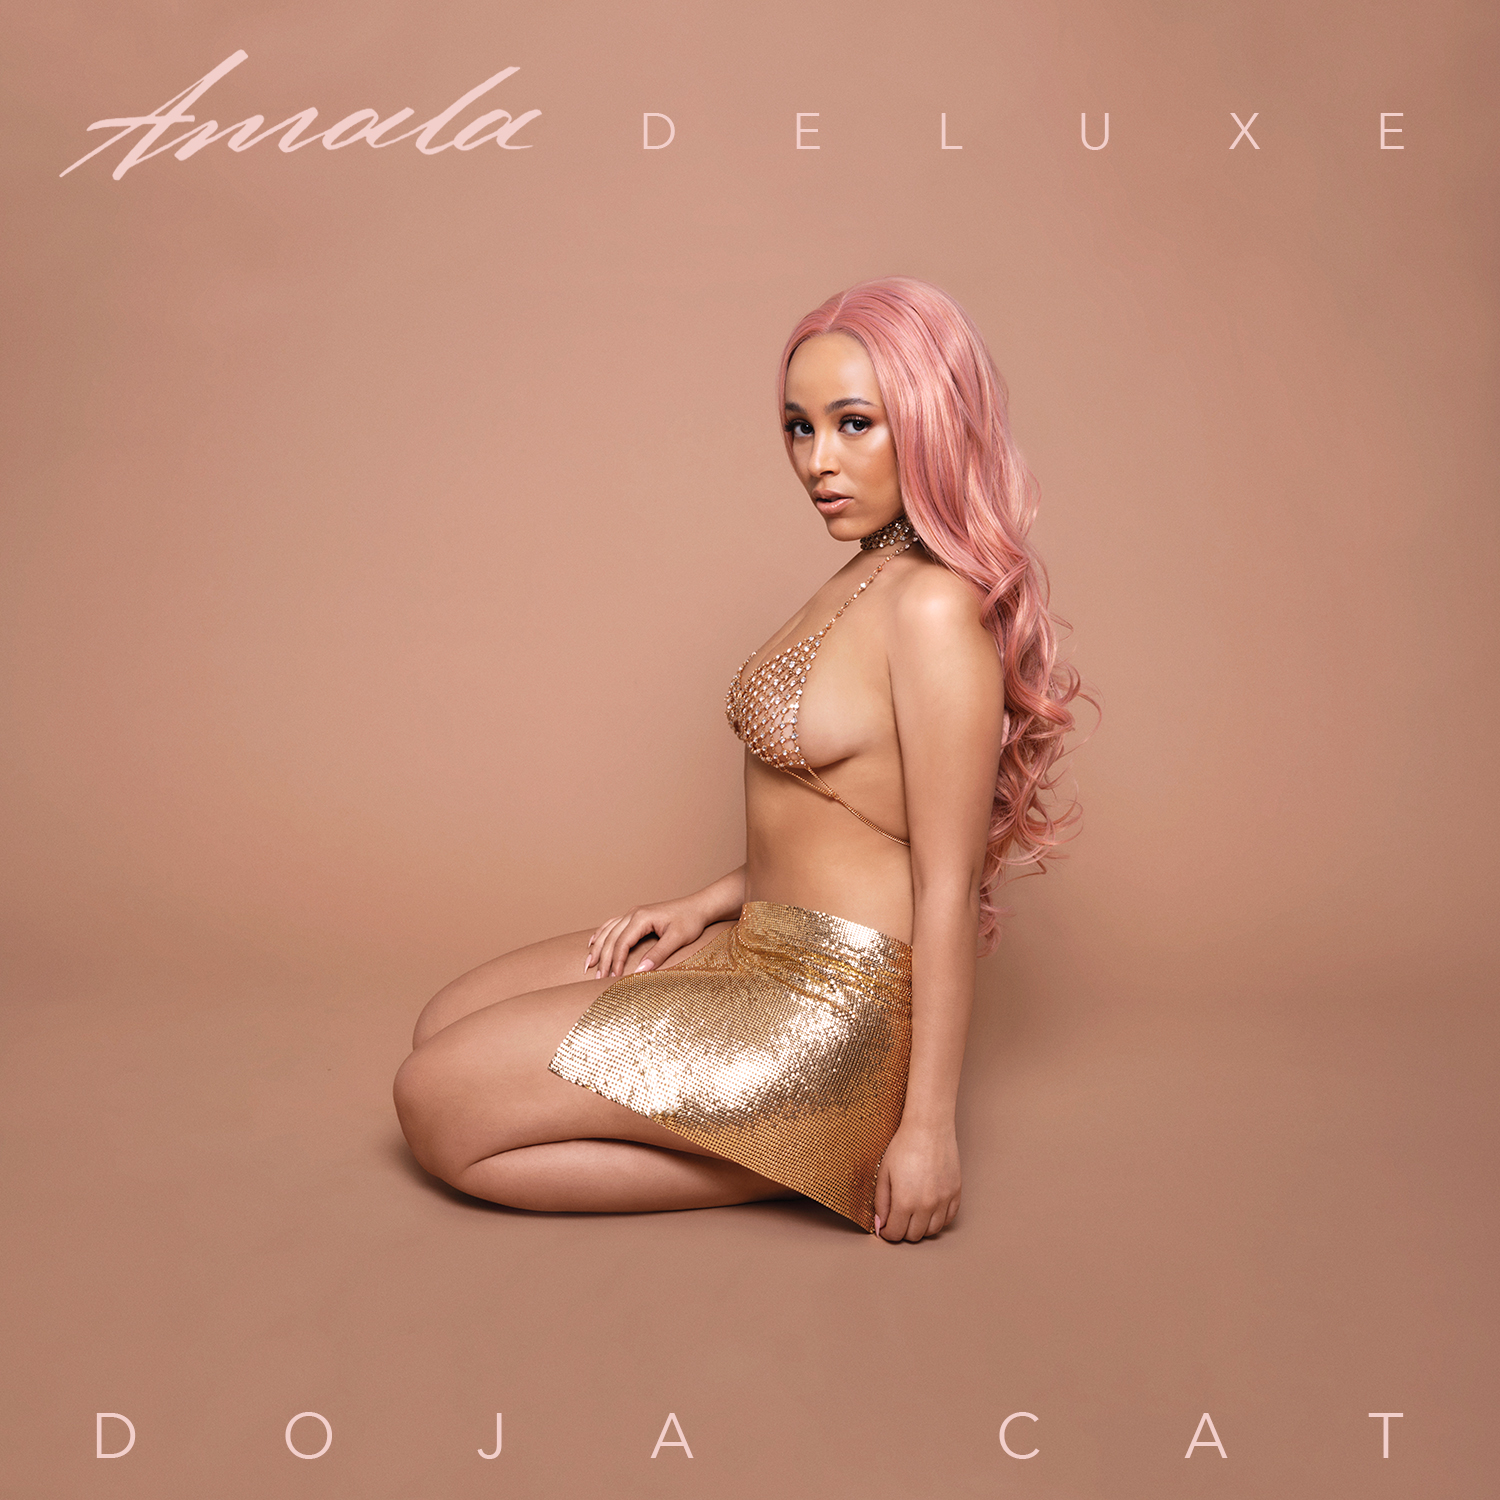 DOJA CAT_Amala Deluxe_Final.jpg